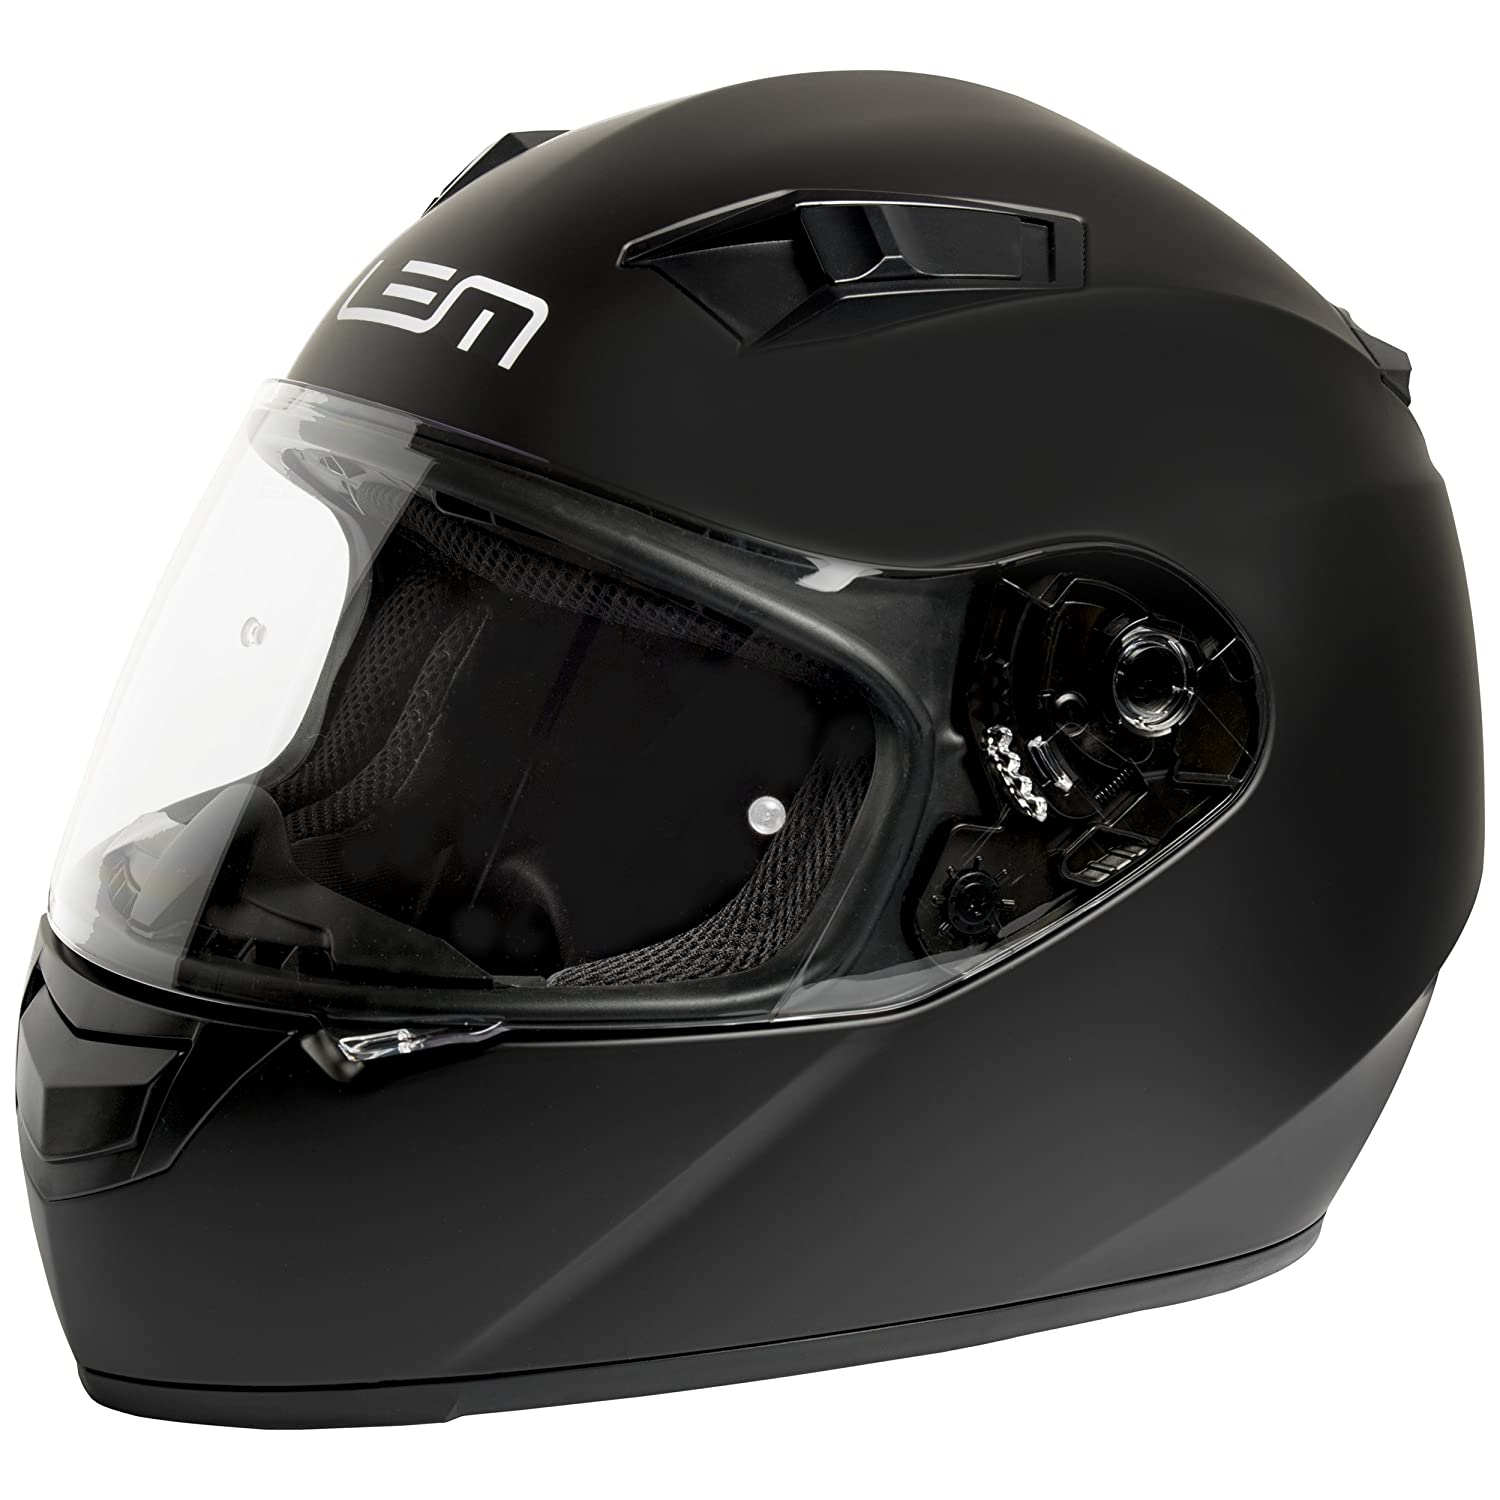 LEM - SHA20056XXL/93 : LEM - SHA20056XXL/93 : Casco Integral Shadow 2.0 Color Negro Mate Talla XXL